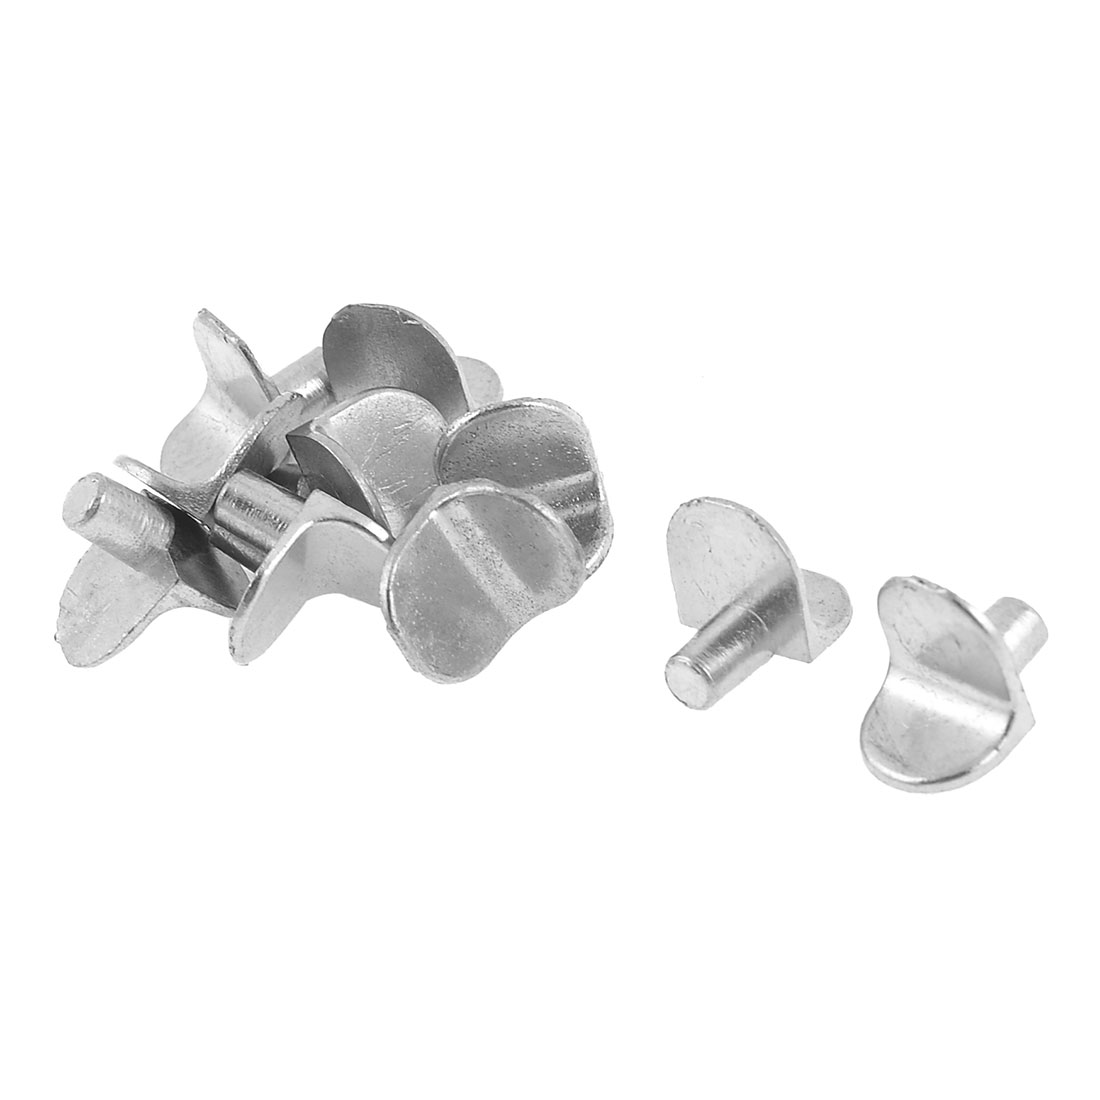 Furniture Hardware Glass Wooden Shelf Support Pin Silver Tone 10pcs